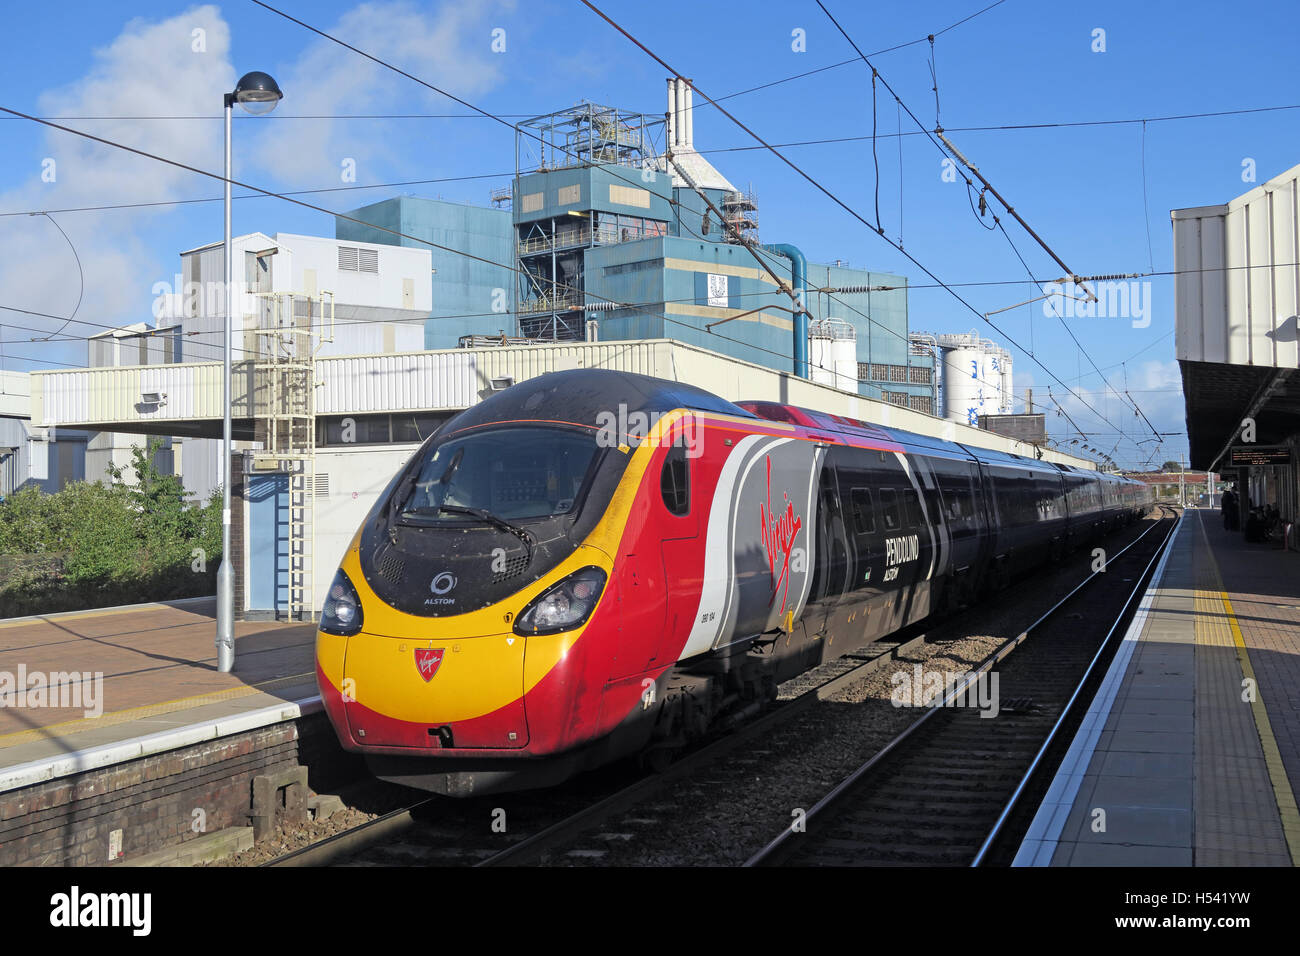 Pendolino at Warrington Bank Quay Rail Station, WCML Cheshire, England,UK - Stock Image